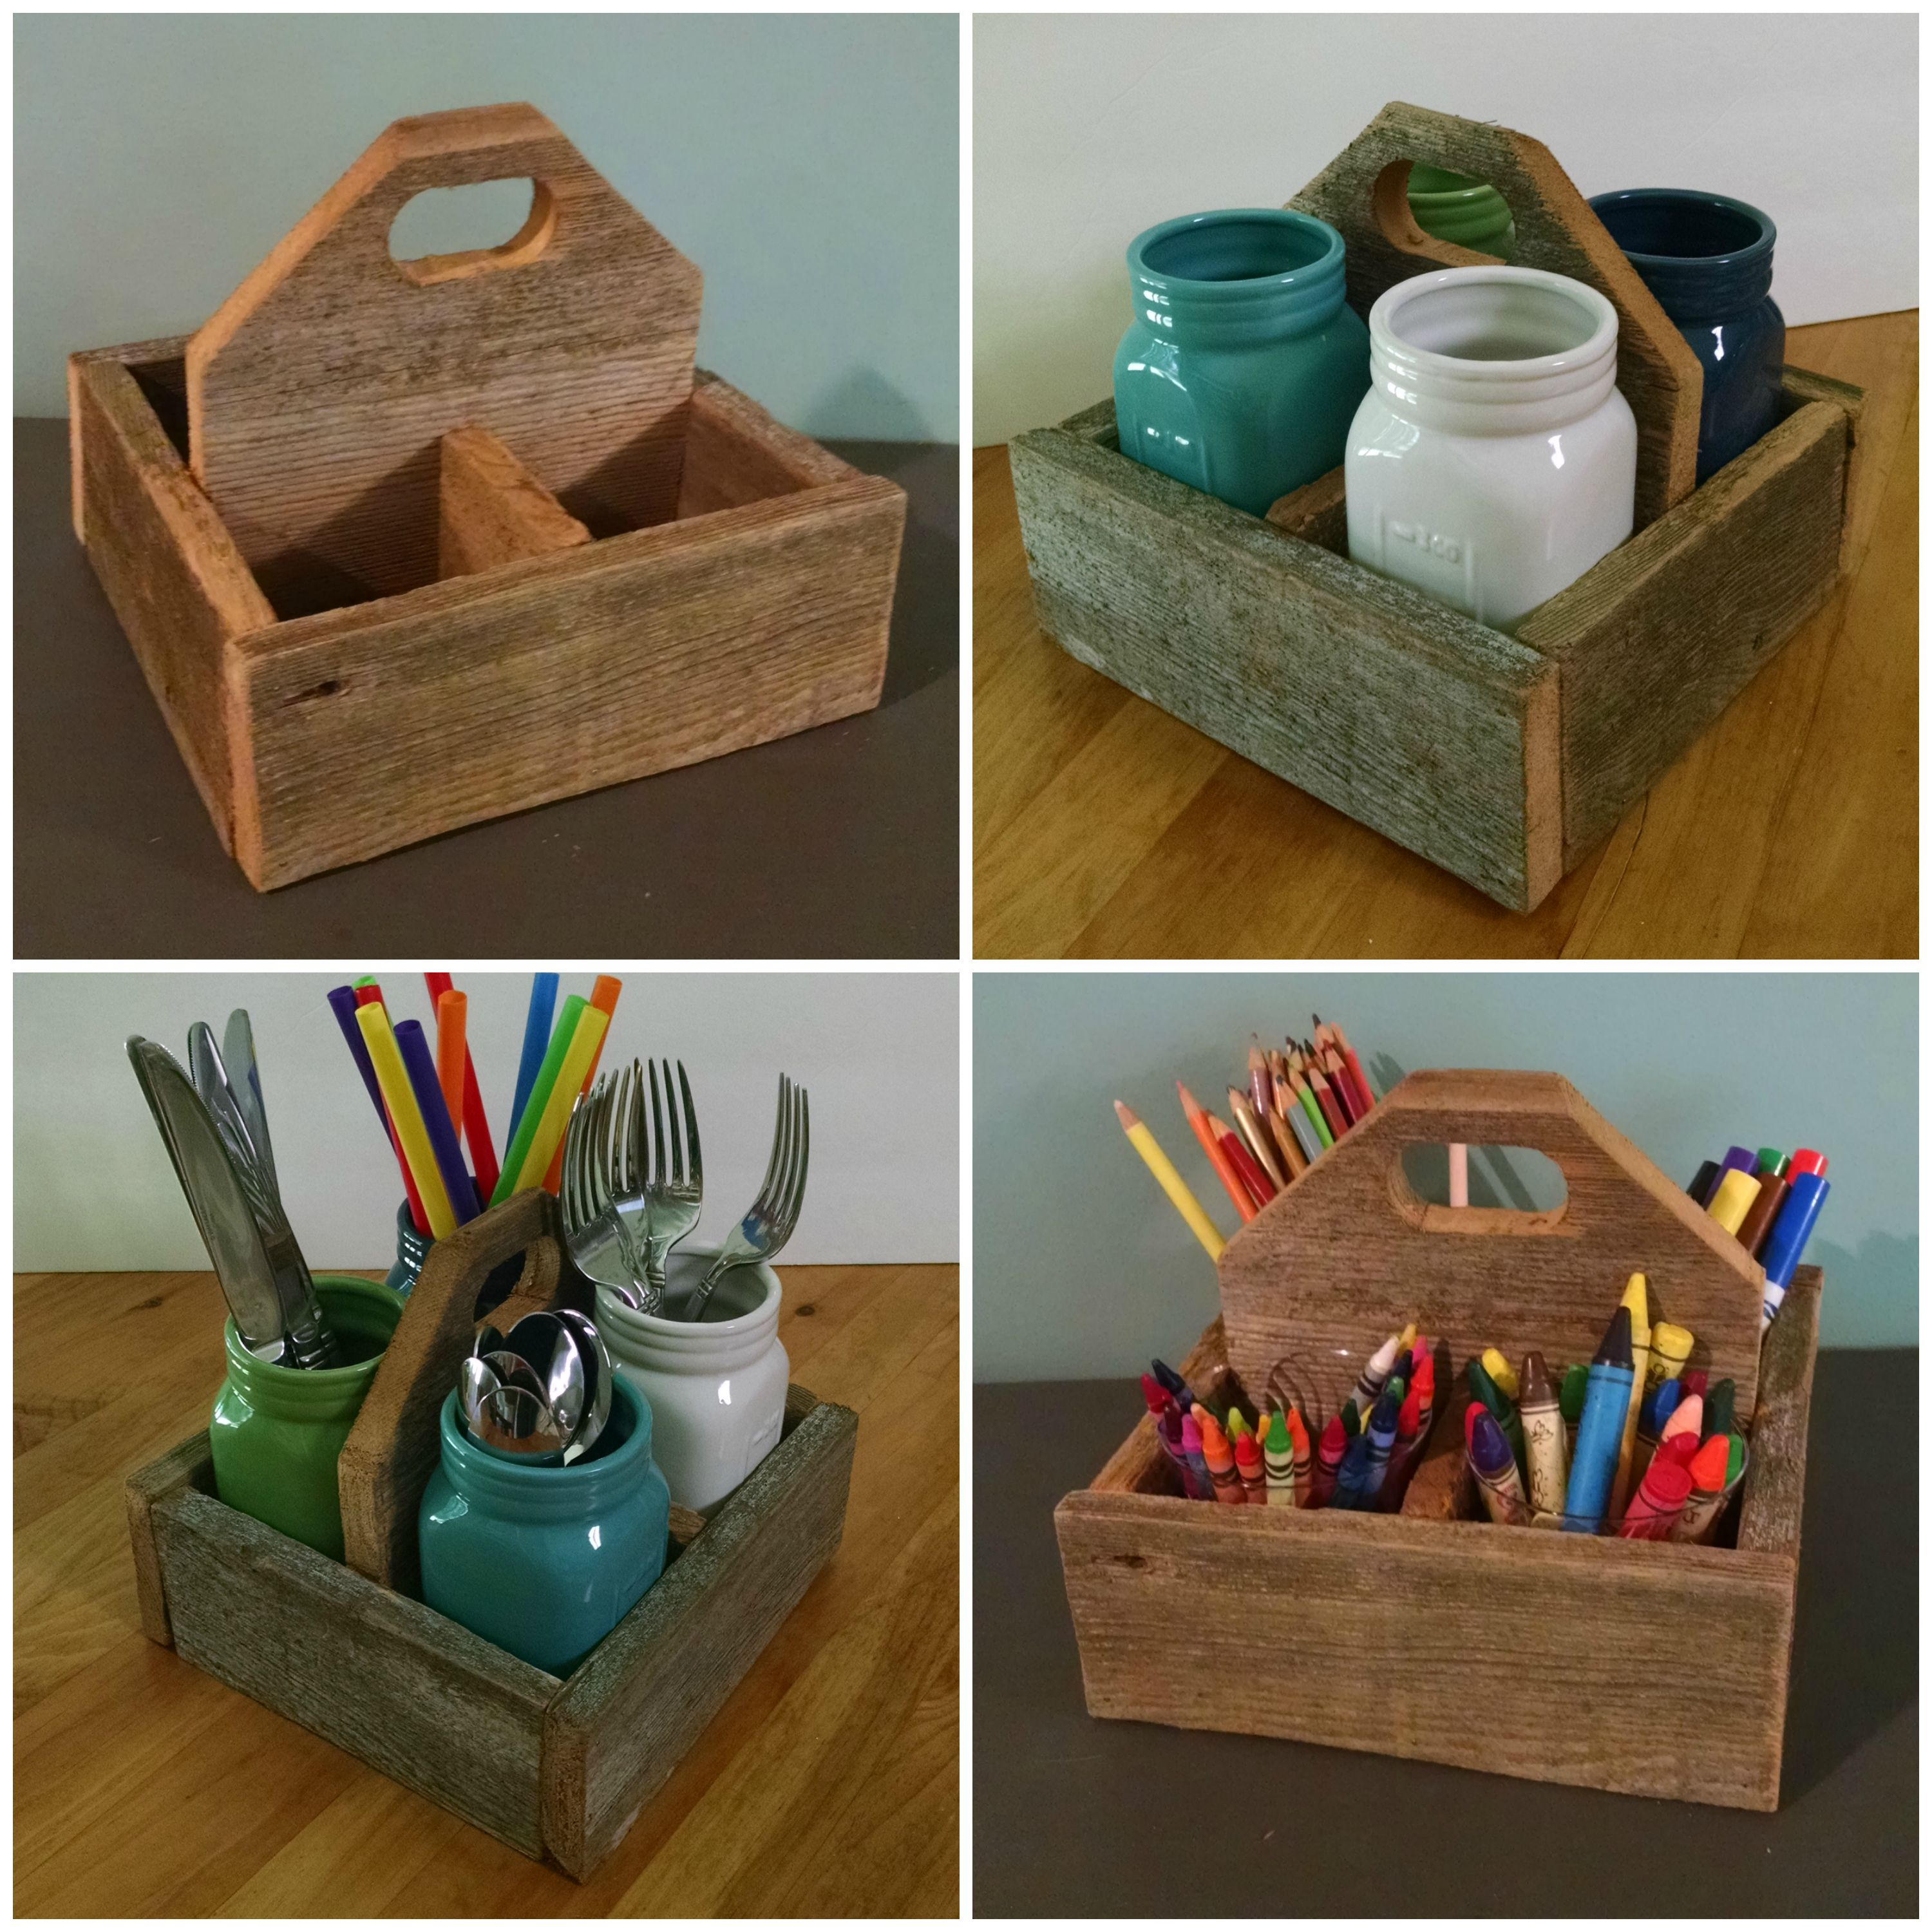 Ahorra Muebles Rustic Wooden Caddy Great For Utensils At A Picnic Or